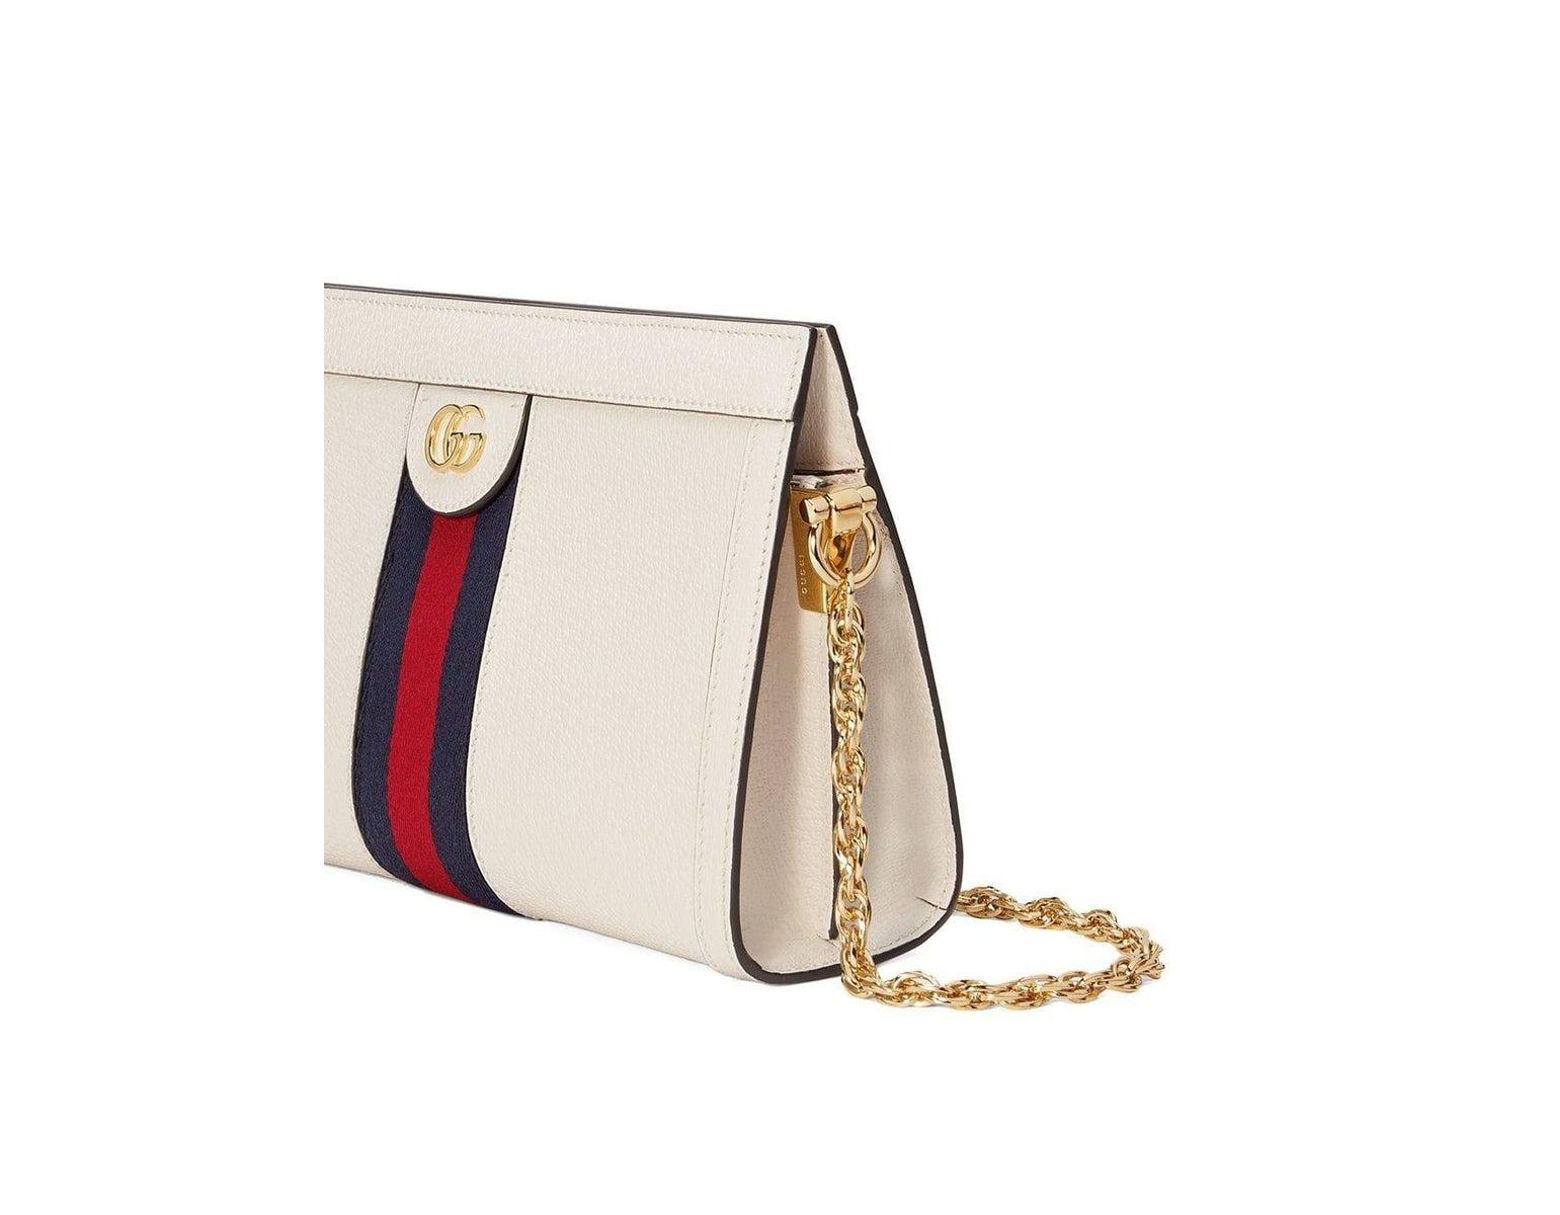 8319bf445 Gucci Ophidia Leather Bag White in White - Lyst